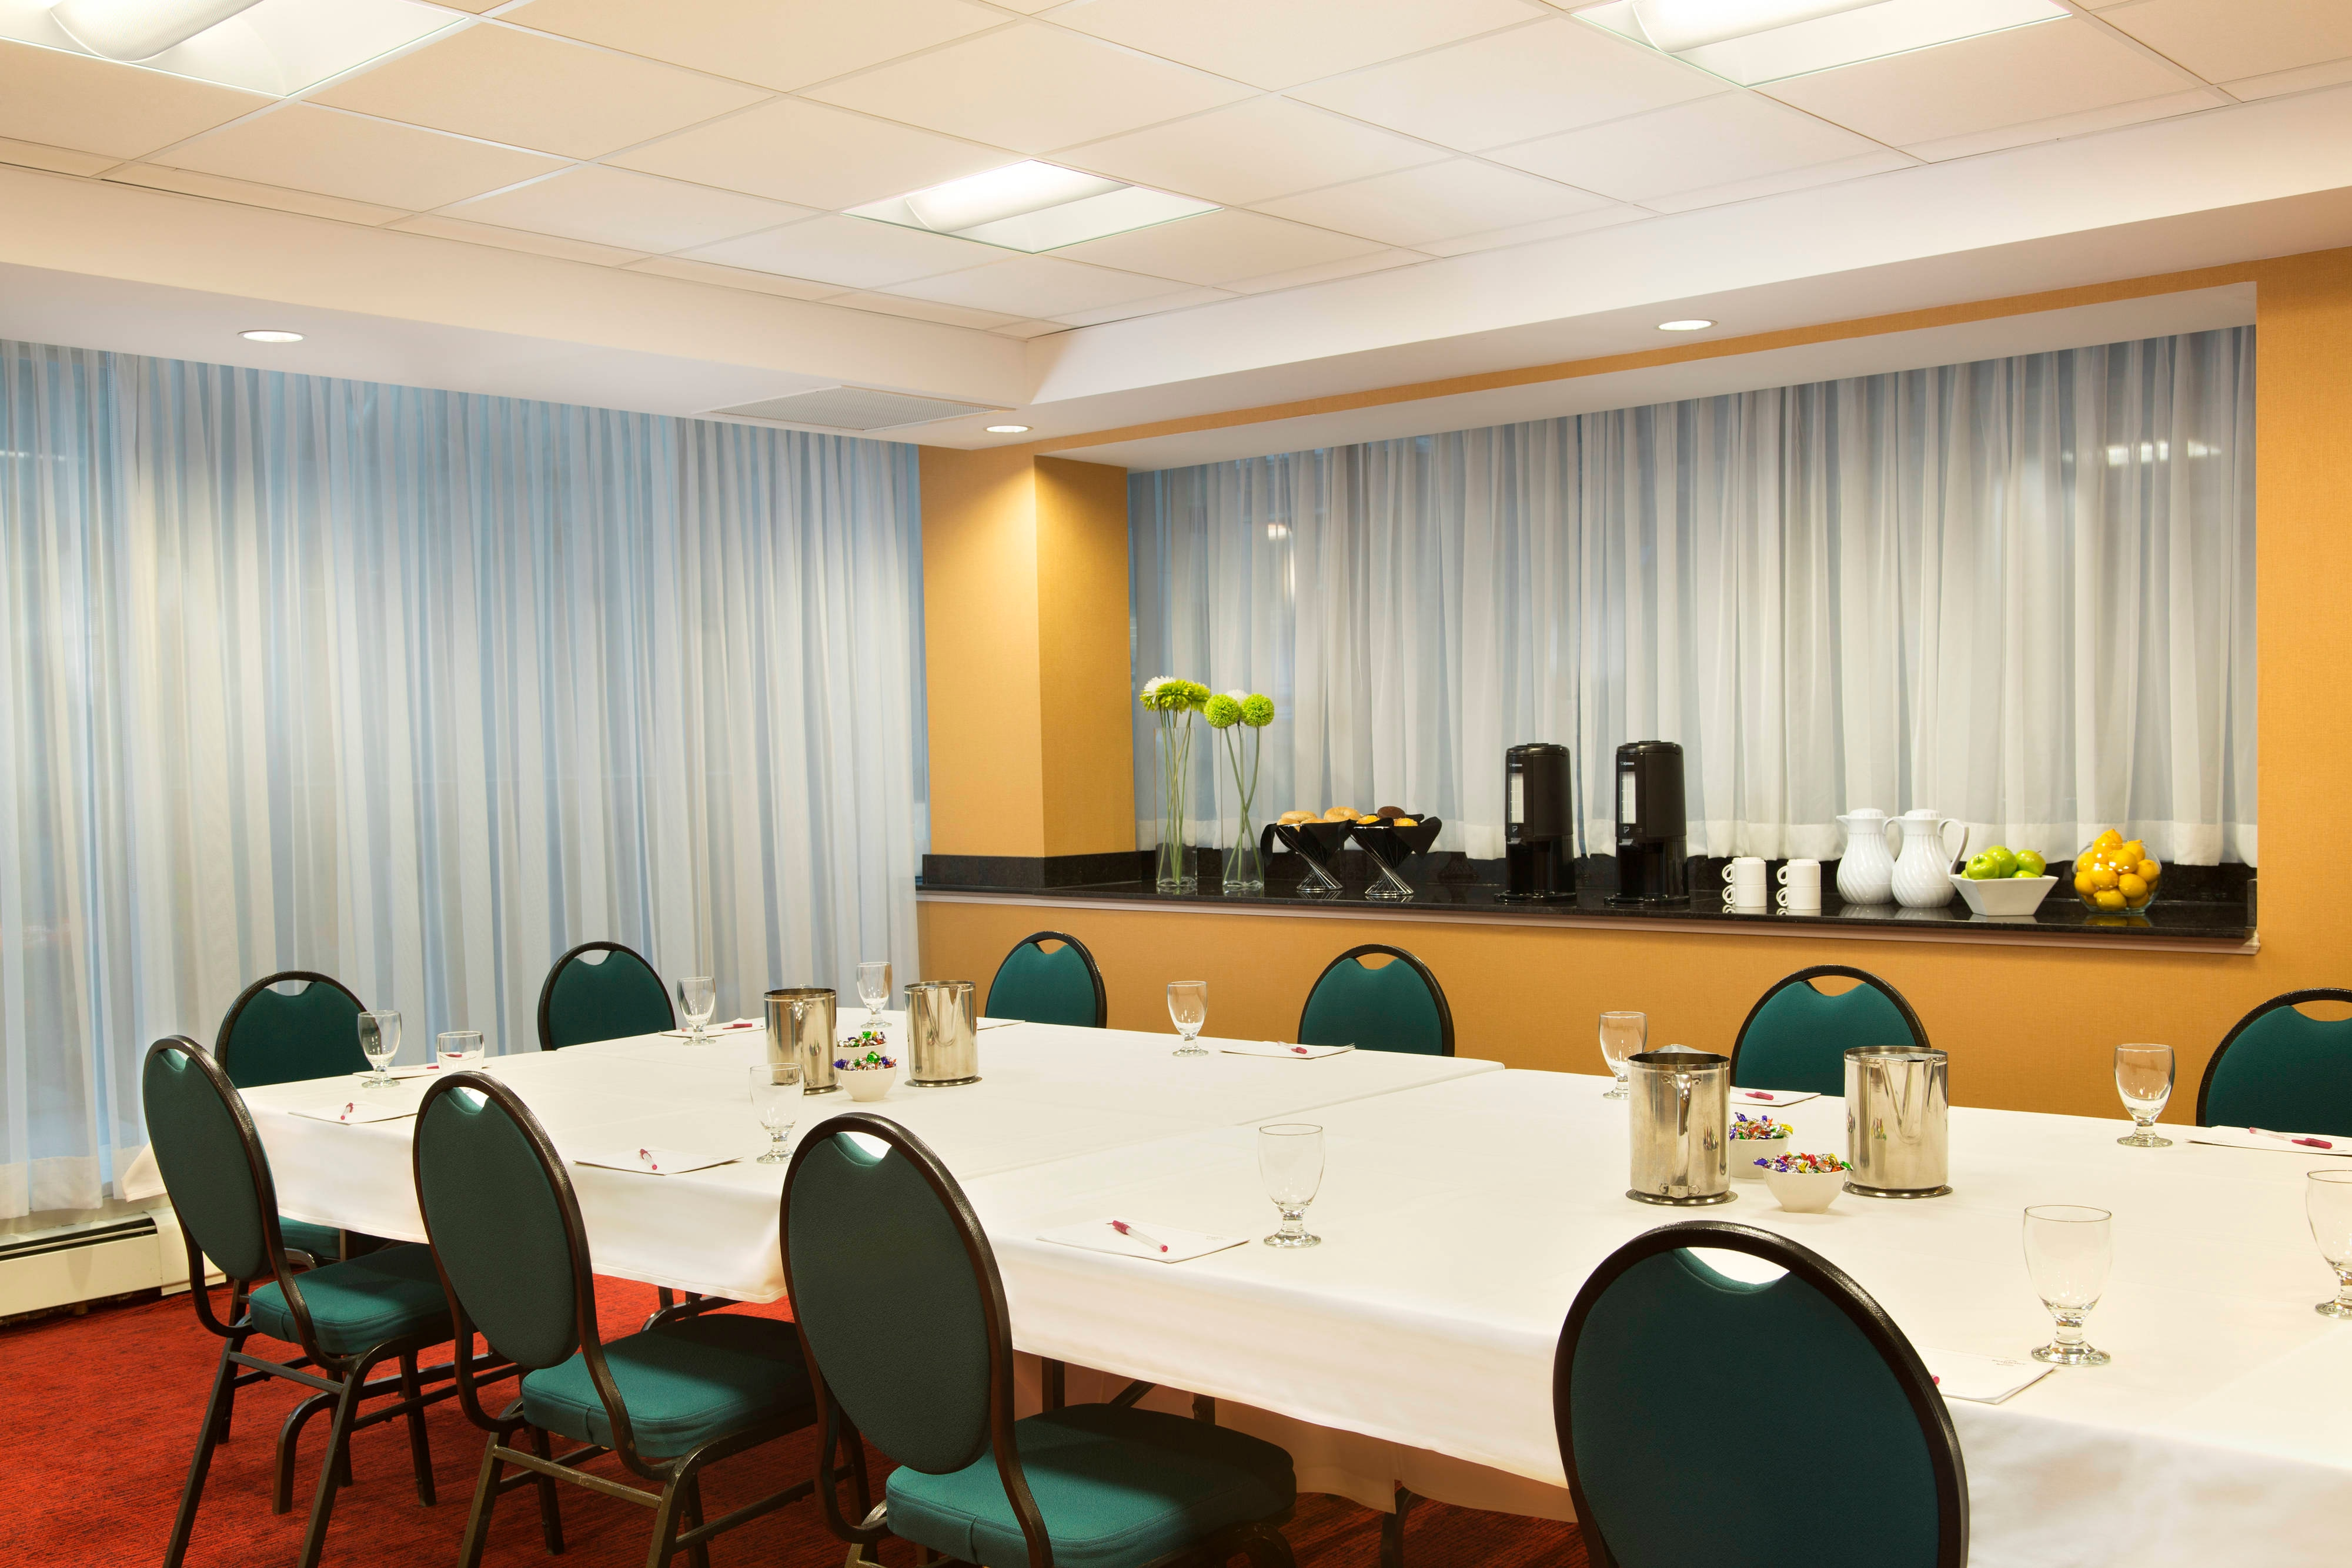 Champlain Meeting Room – Boardroom Setup